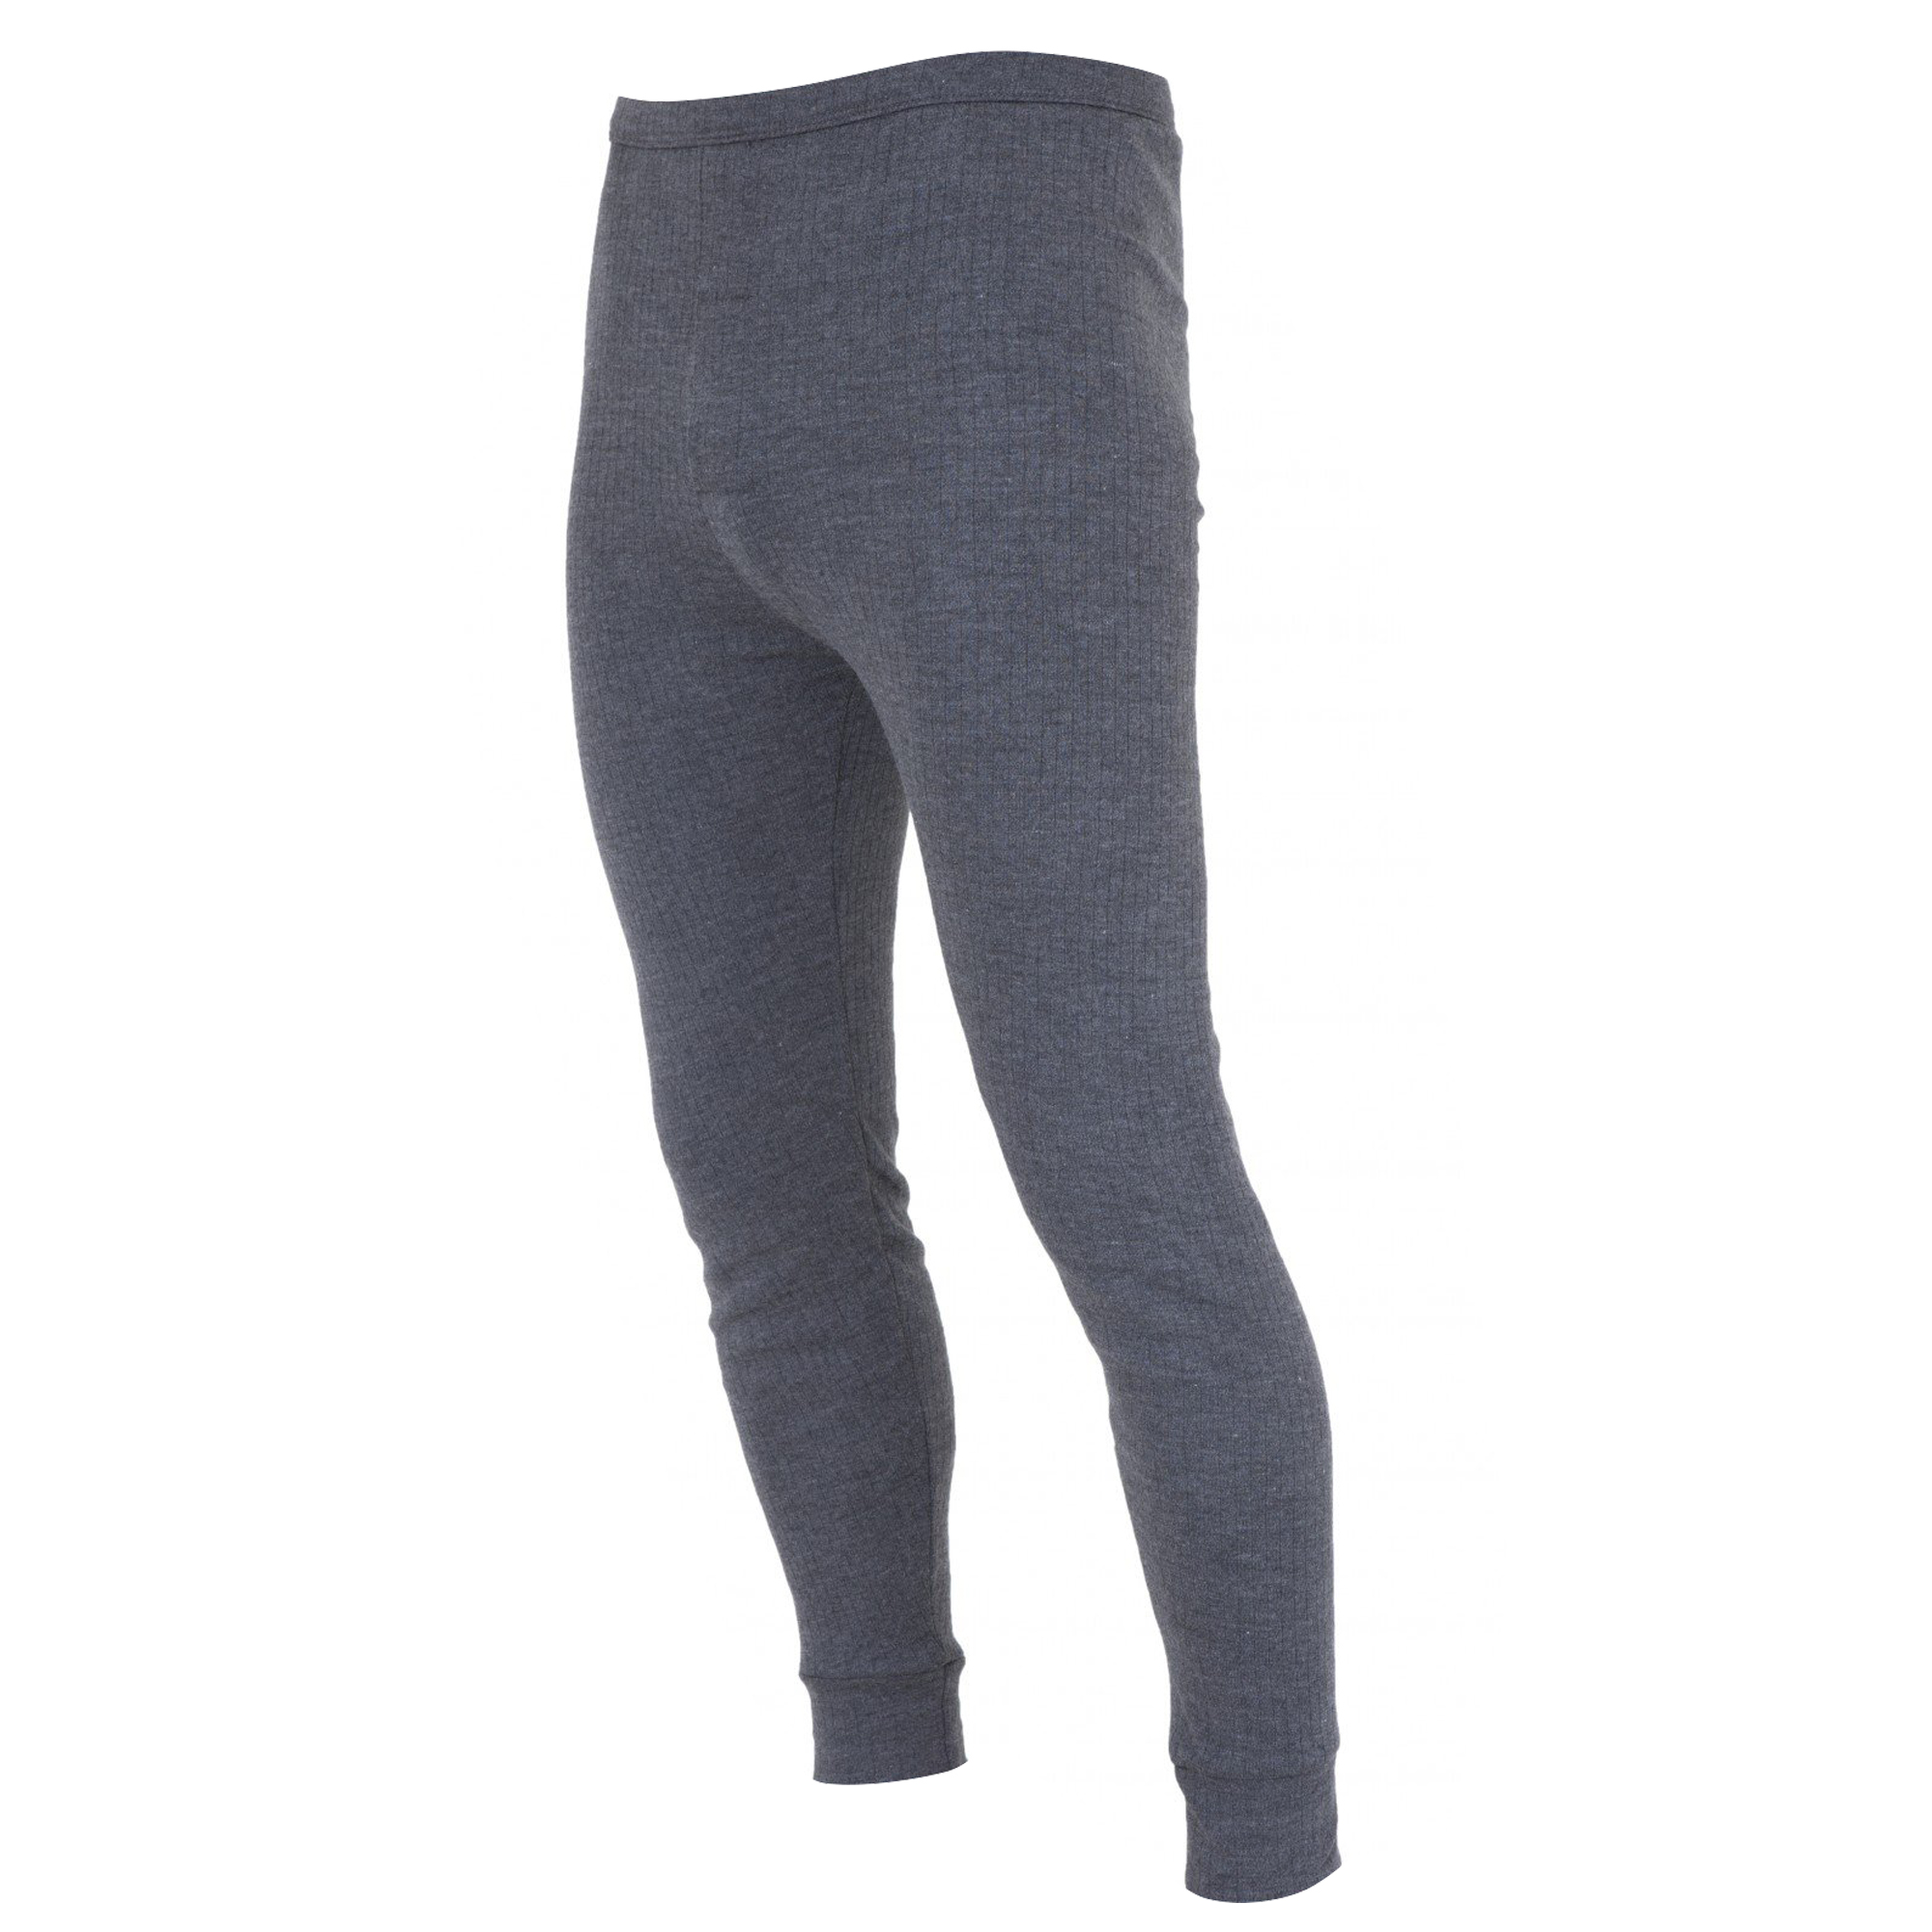 Find great deals on eBay for long john pants. Shop with confidence.